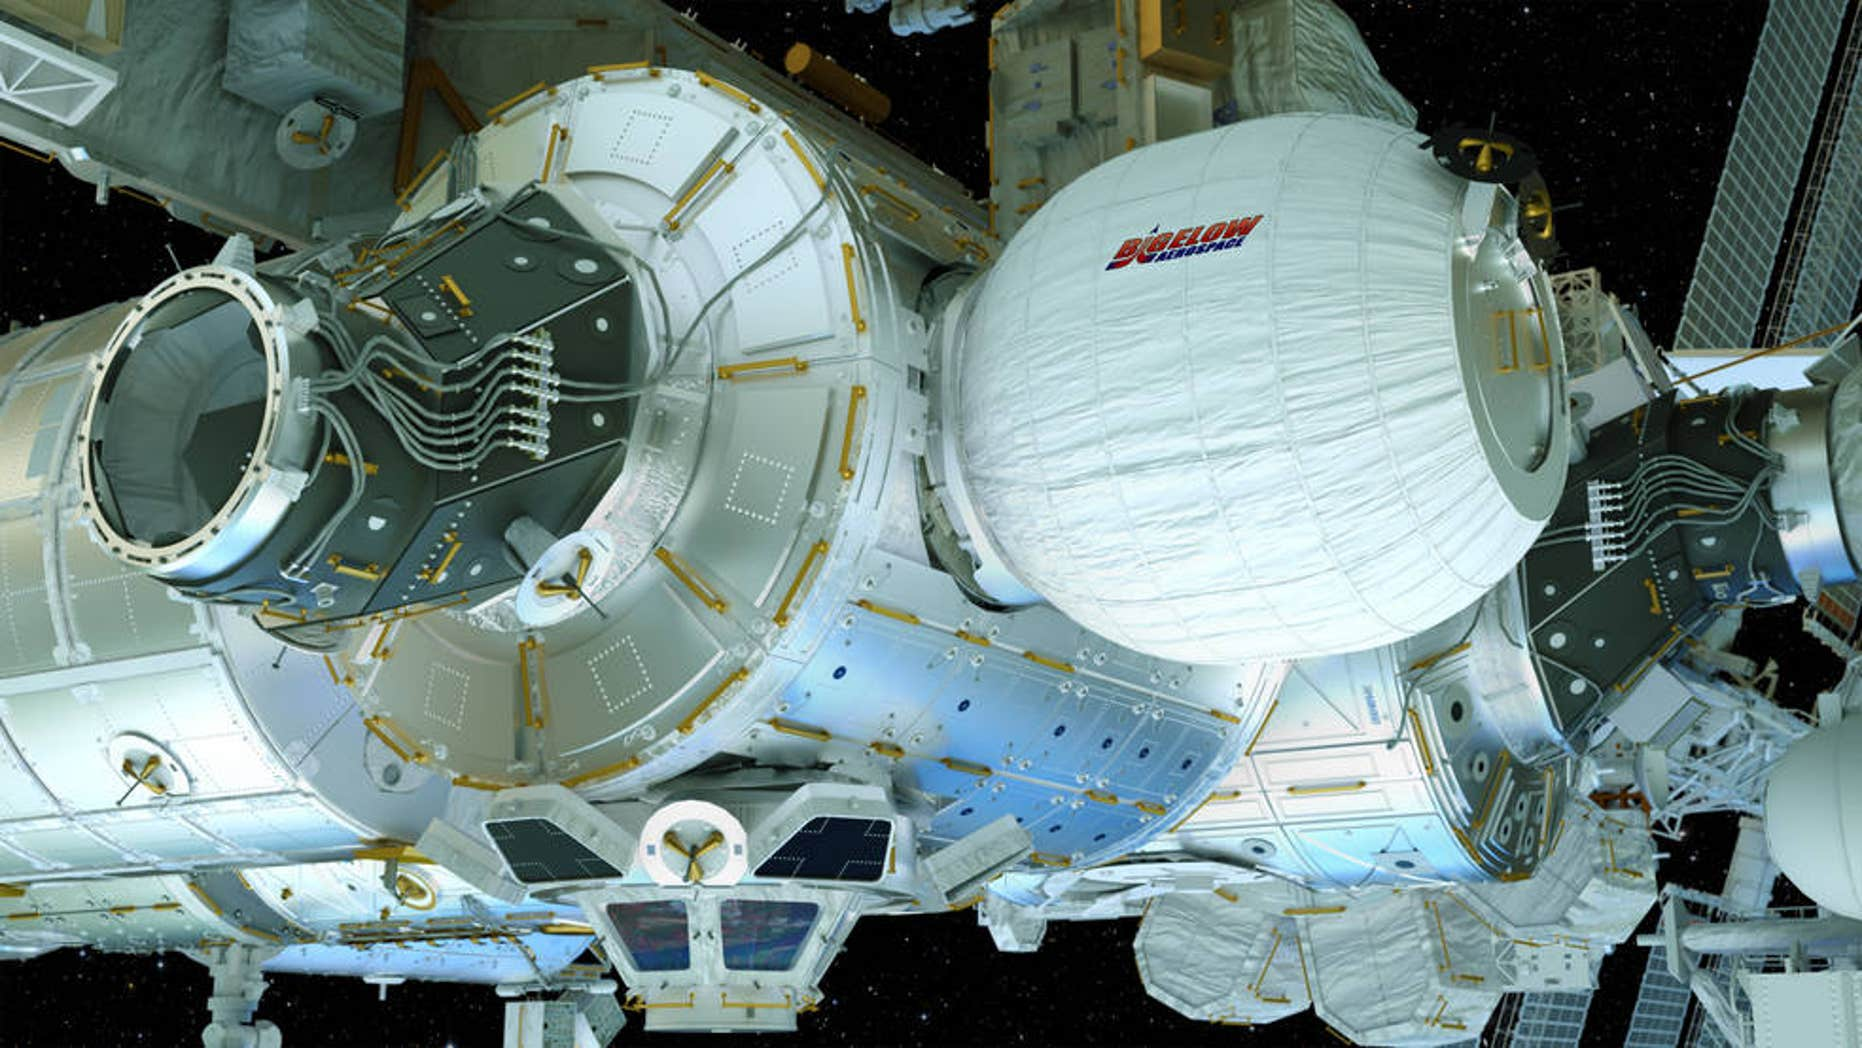 Artist's concept of the BEAM module attached to the International Space Station. (Bigelow Aerospace)